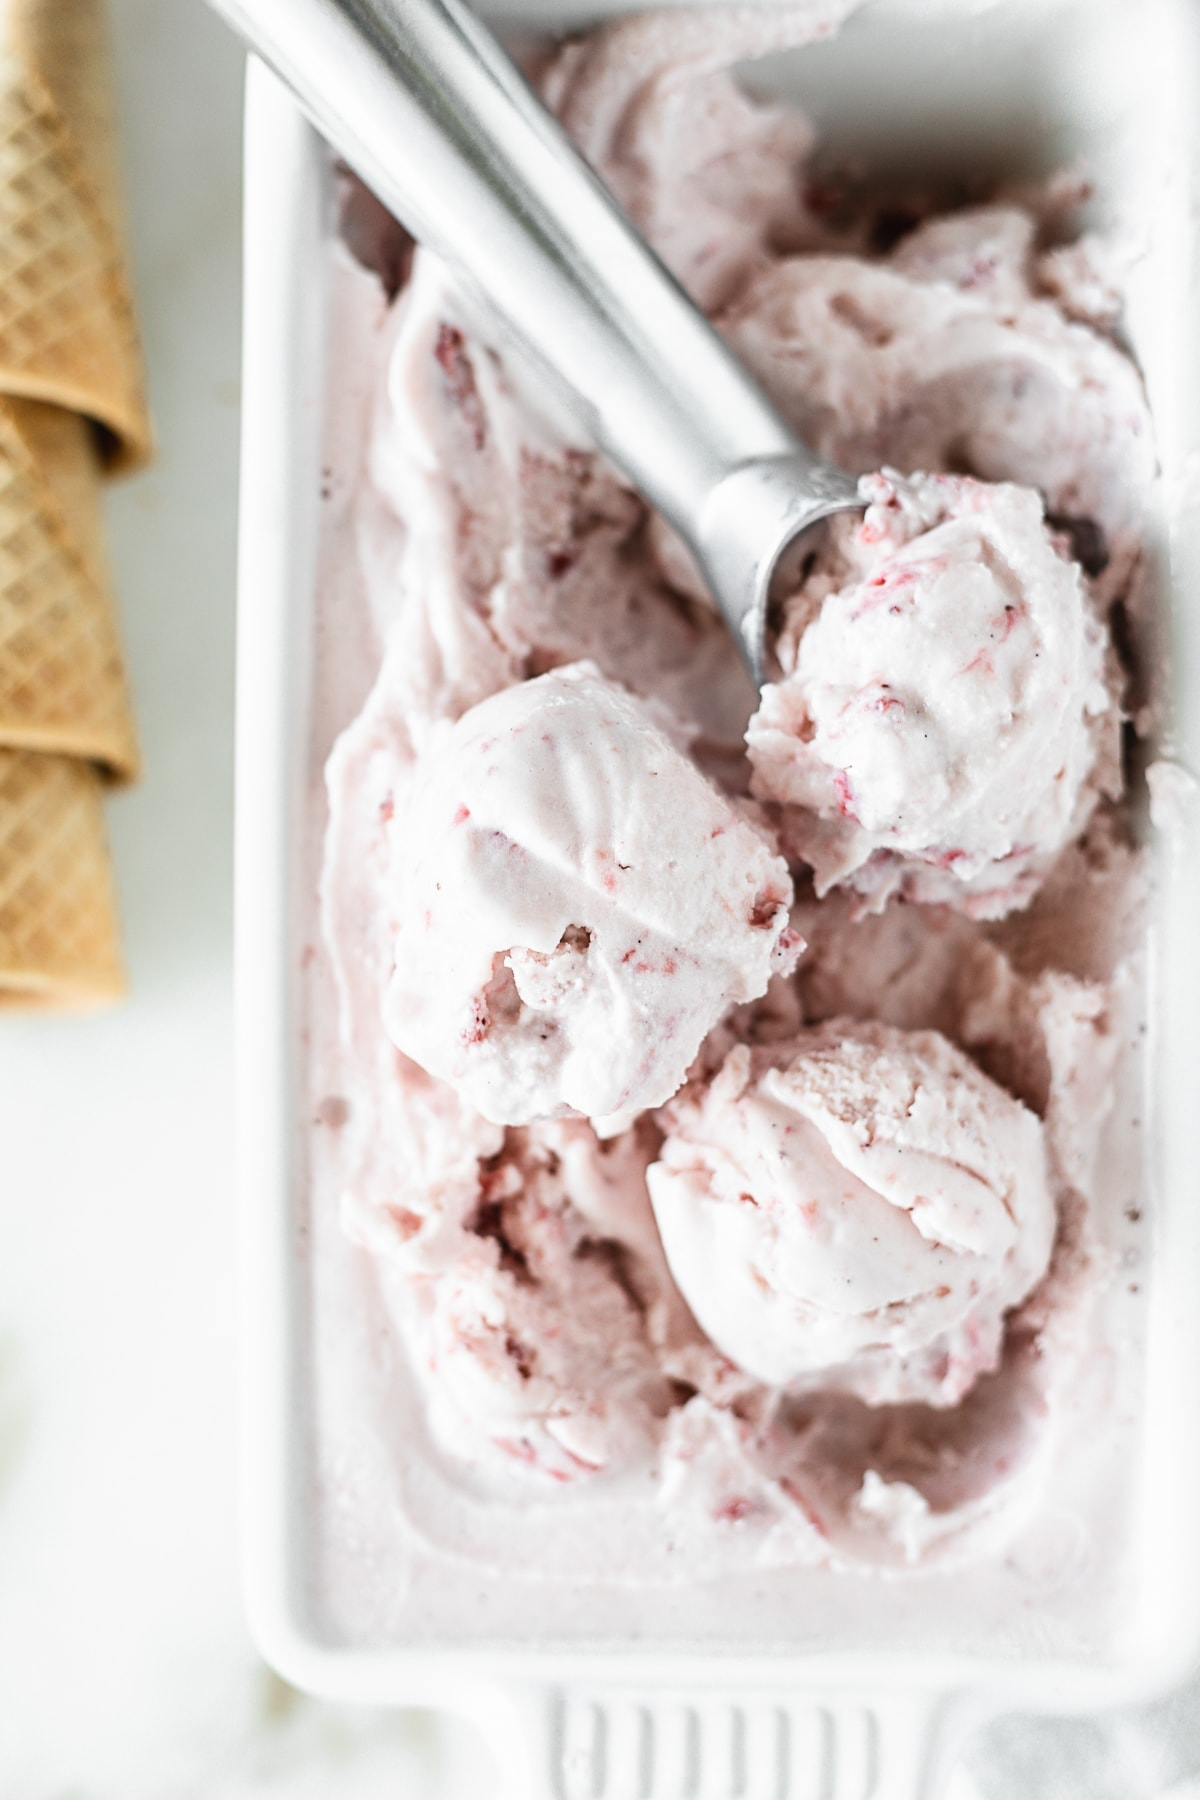 This homemade roasted strawberry ice cream is bursting with sweet strawberry flavor and is so easy to make with only 6 simple ingredients! It's a must-have dessert this summer! (gluten-free, vegetarian) | via livelytable.com